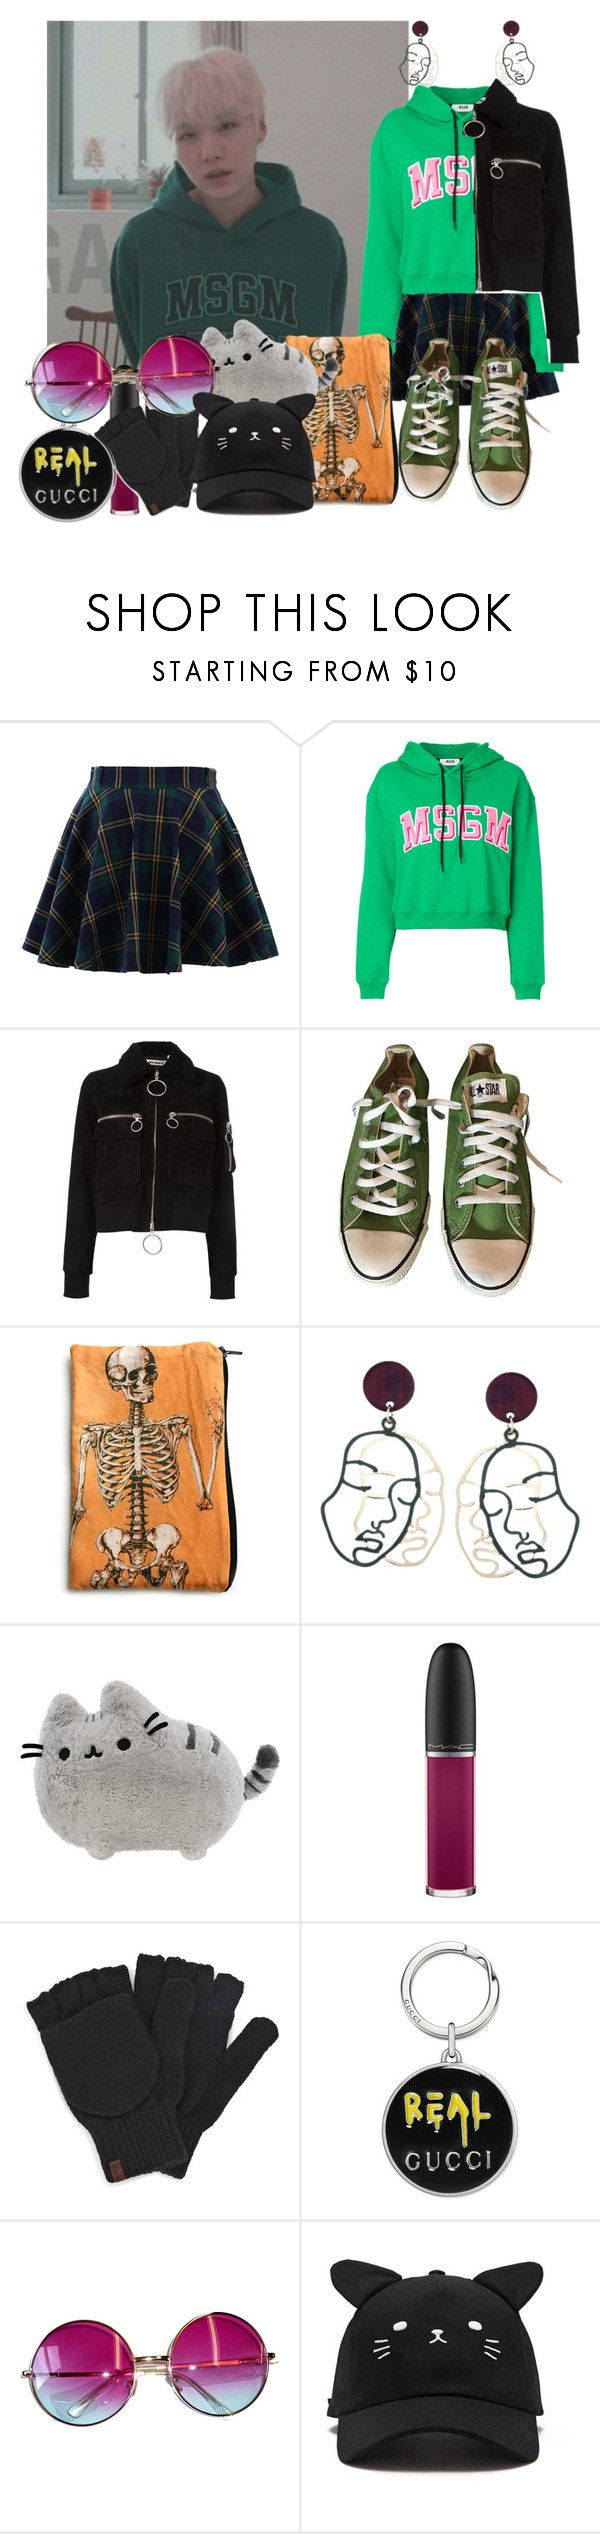 """//512//"" by danielagreg on Polyvore featuring Chicwish, MSGM, Off-White, Converse, Pusheen, MAC Cosmetics, Keds, Gucci, Janis and Forever 21"